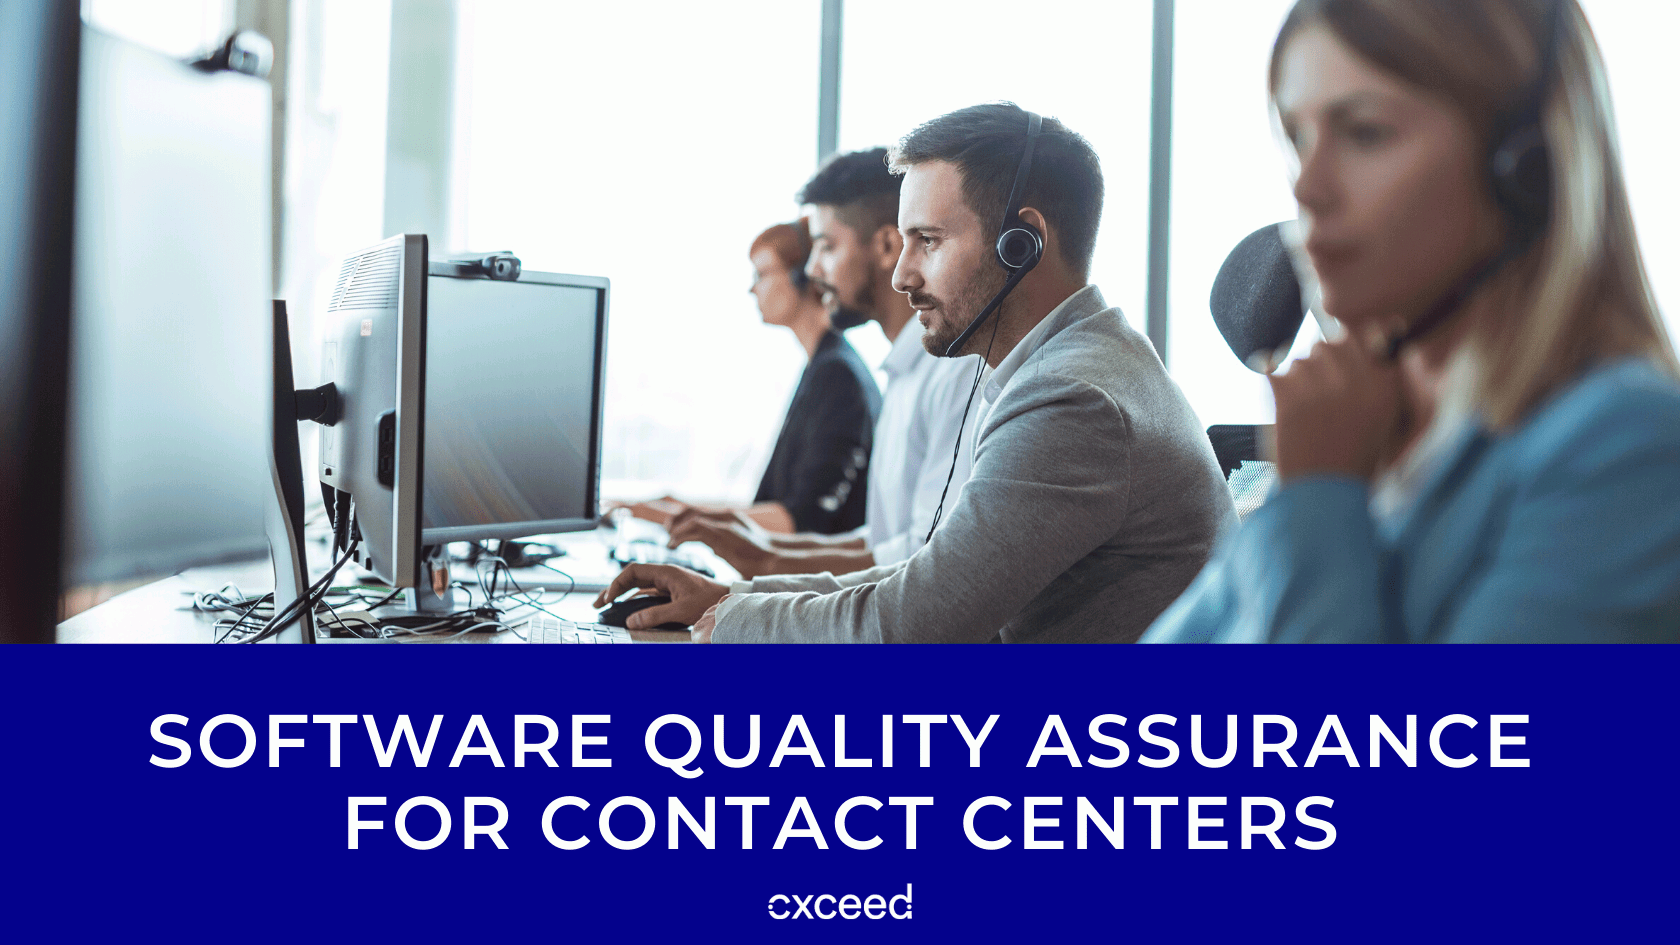 Software Quality Assurance for Contact Centers